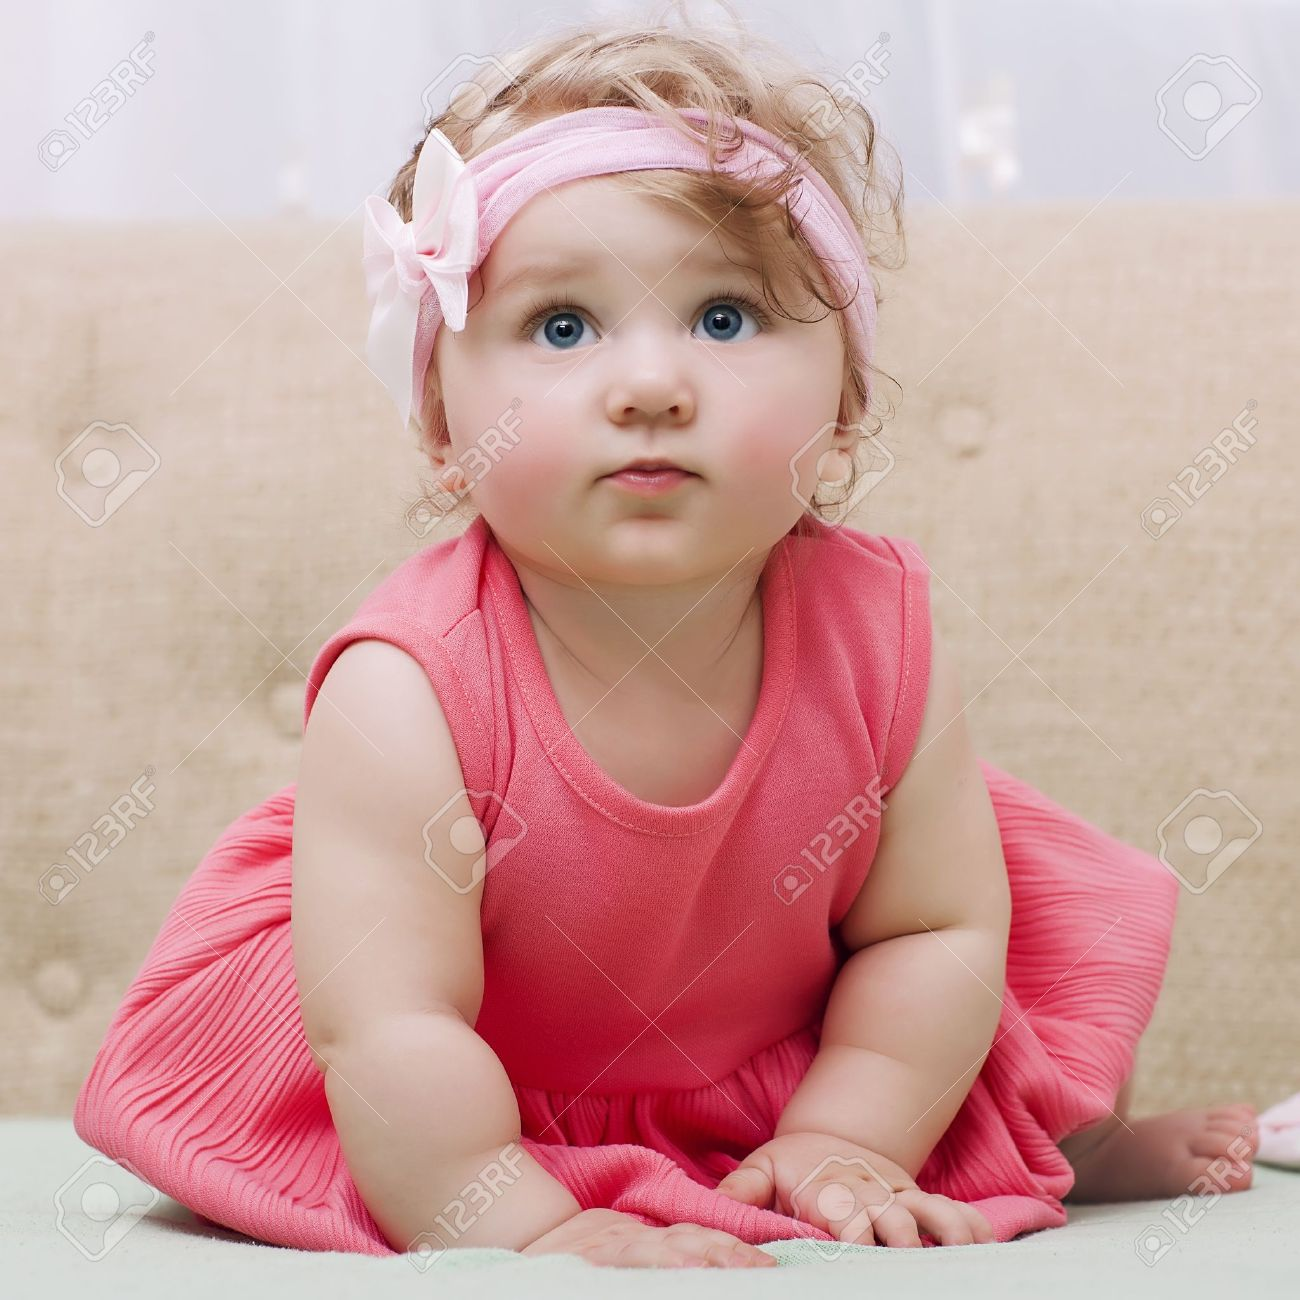 beautiful smiling cute baby stock photo, picture and royalty free